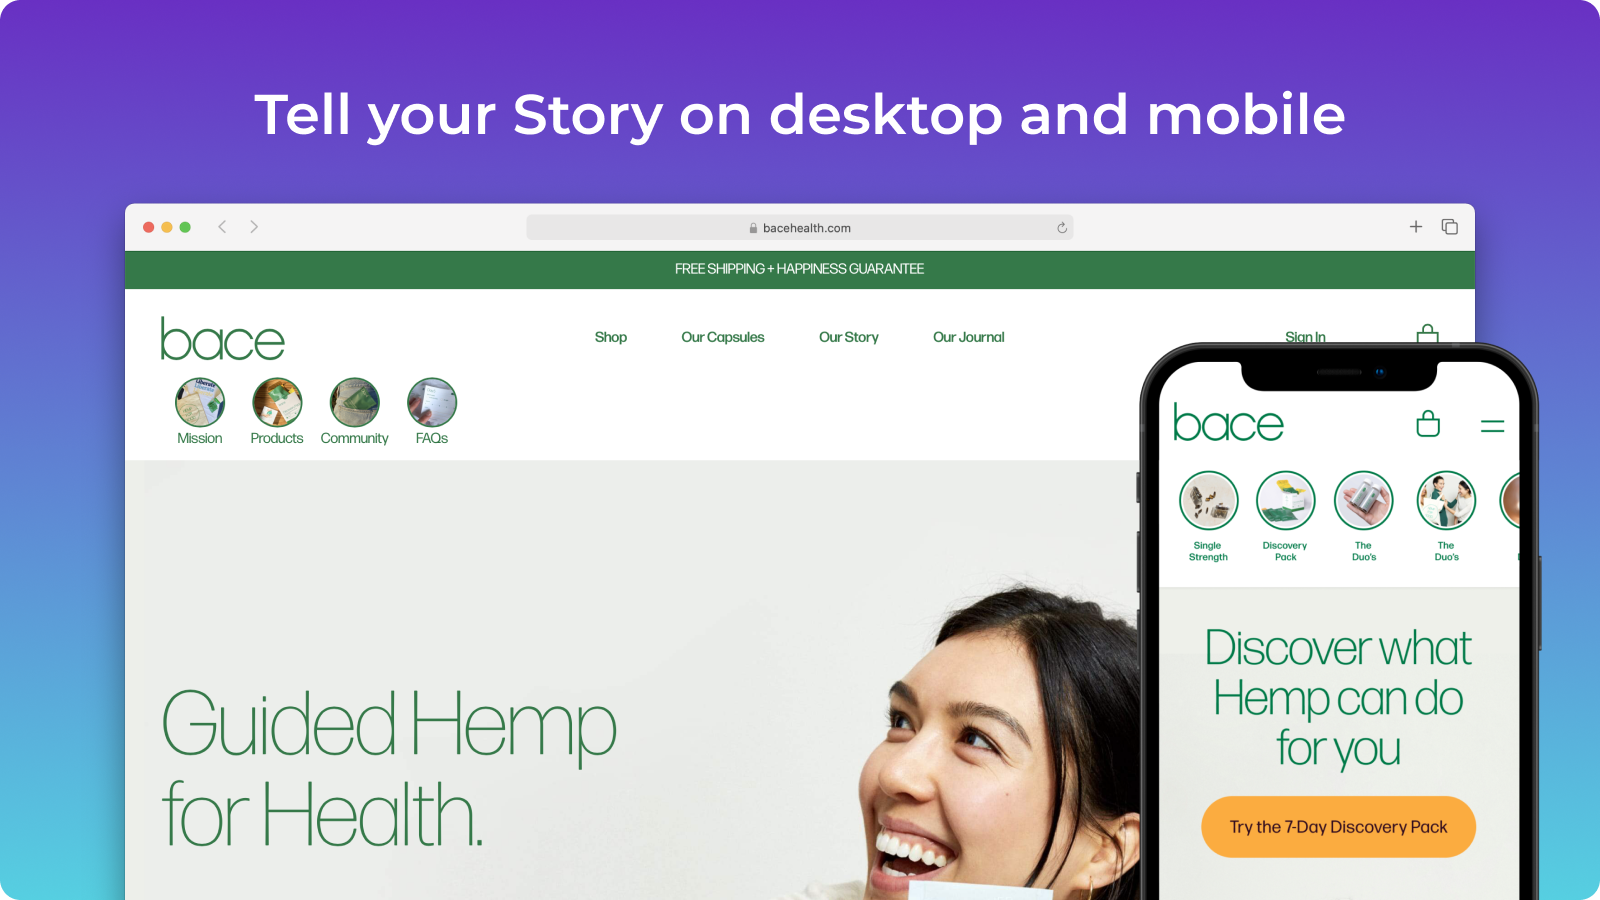 Tell your Story on desktop and mobile